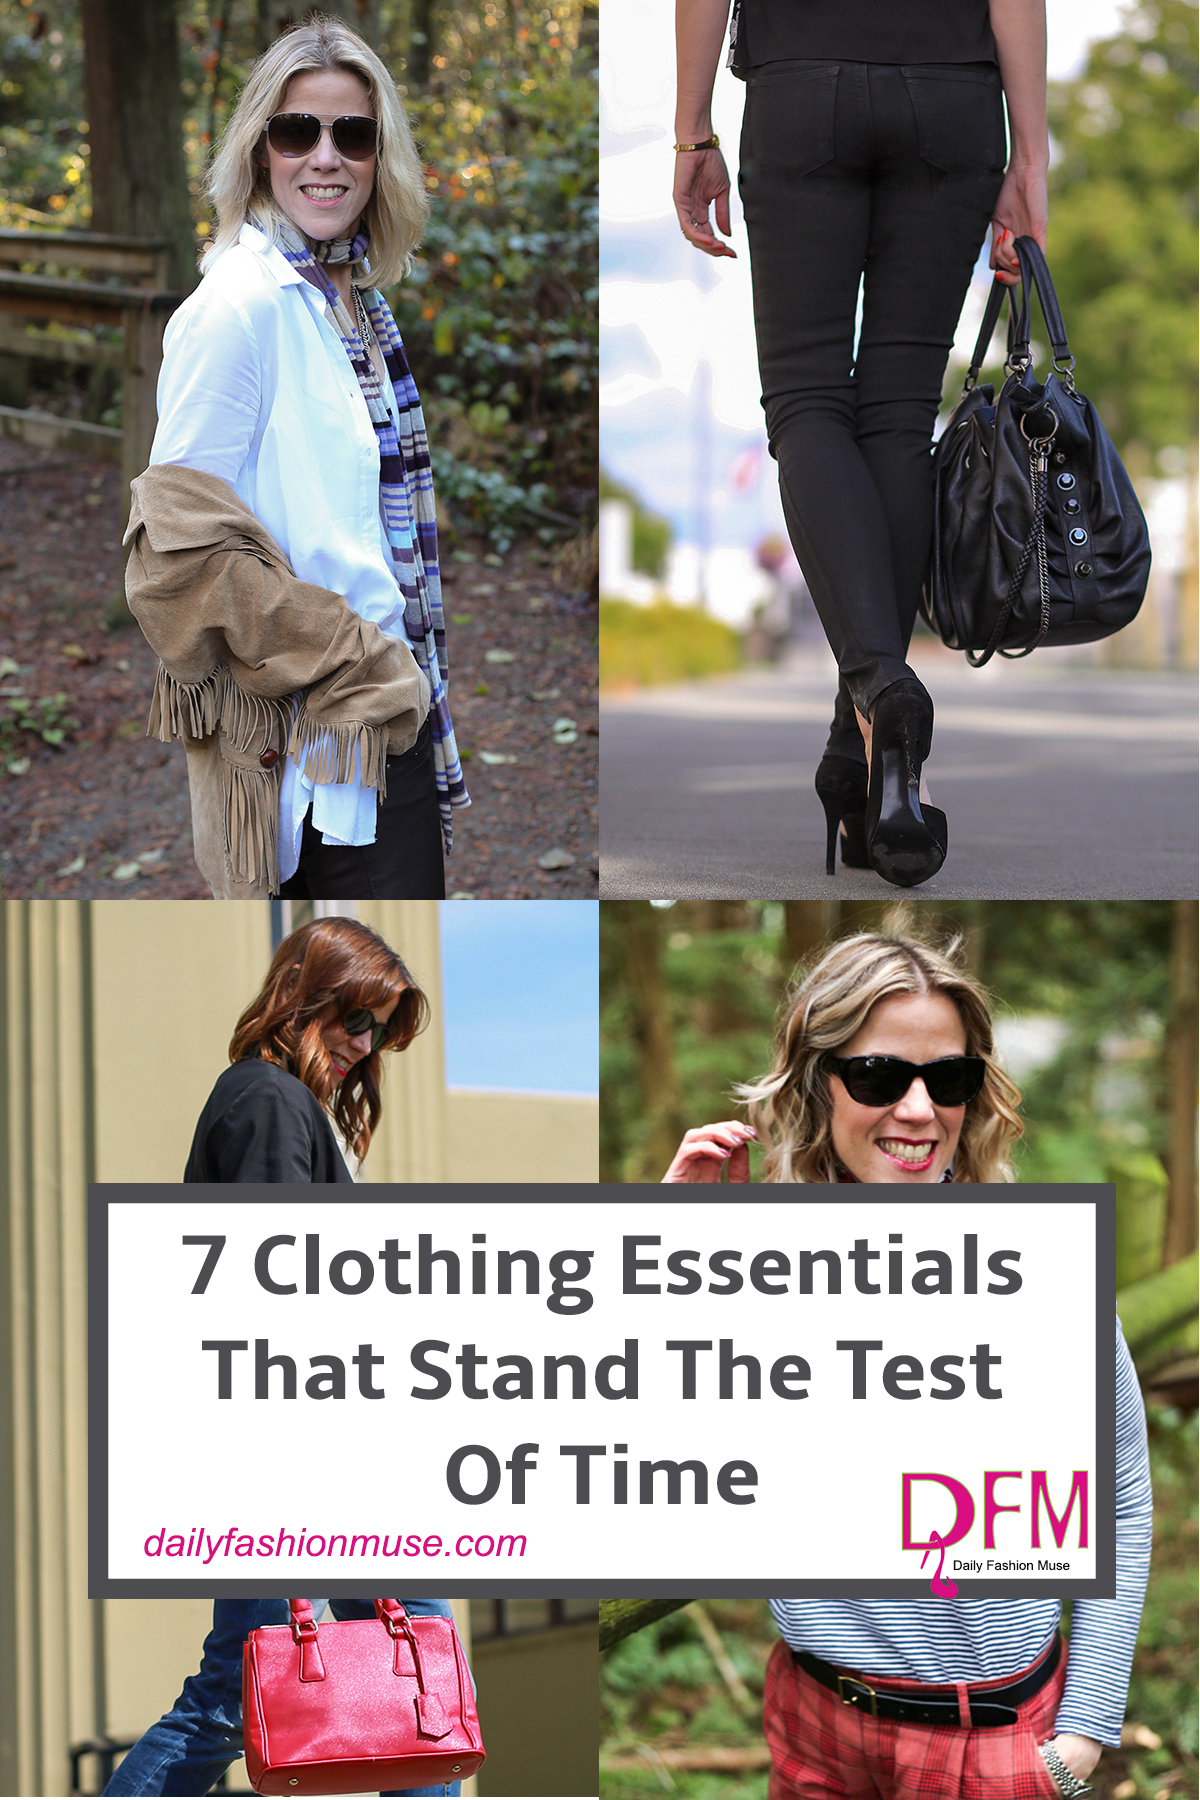 There are 7 clothing essentials that have proven to stand the test of time over the years and are worth investing as much as you can afford to. Click read what they are or pin for later reference.